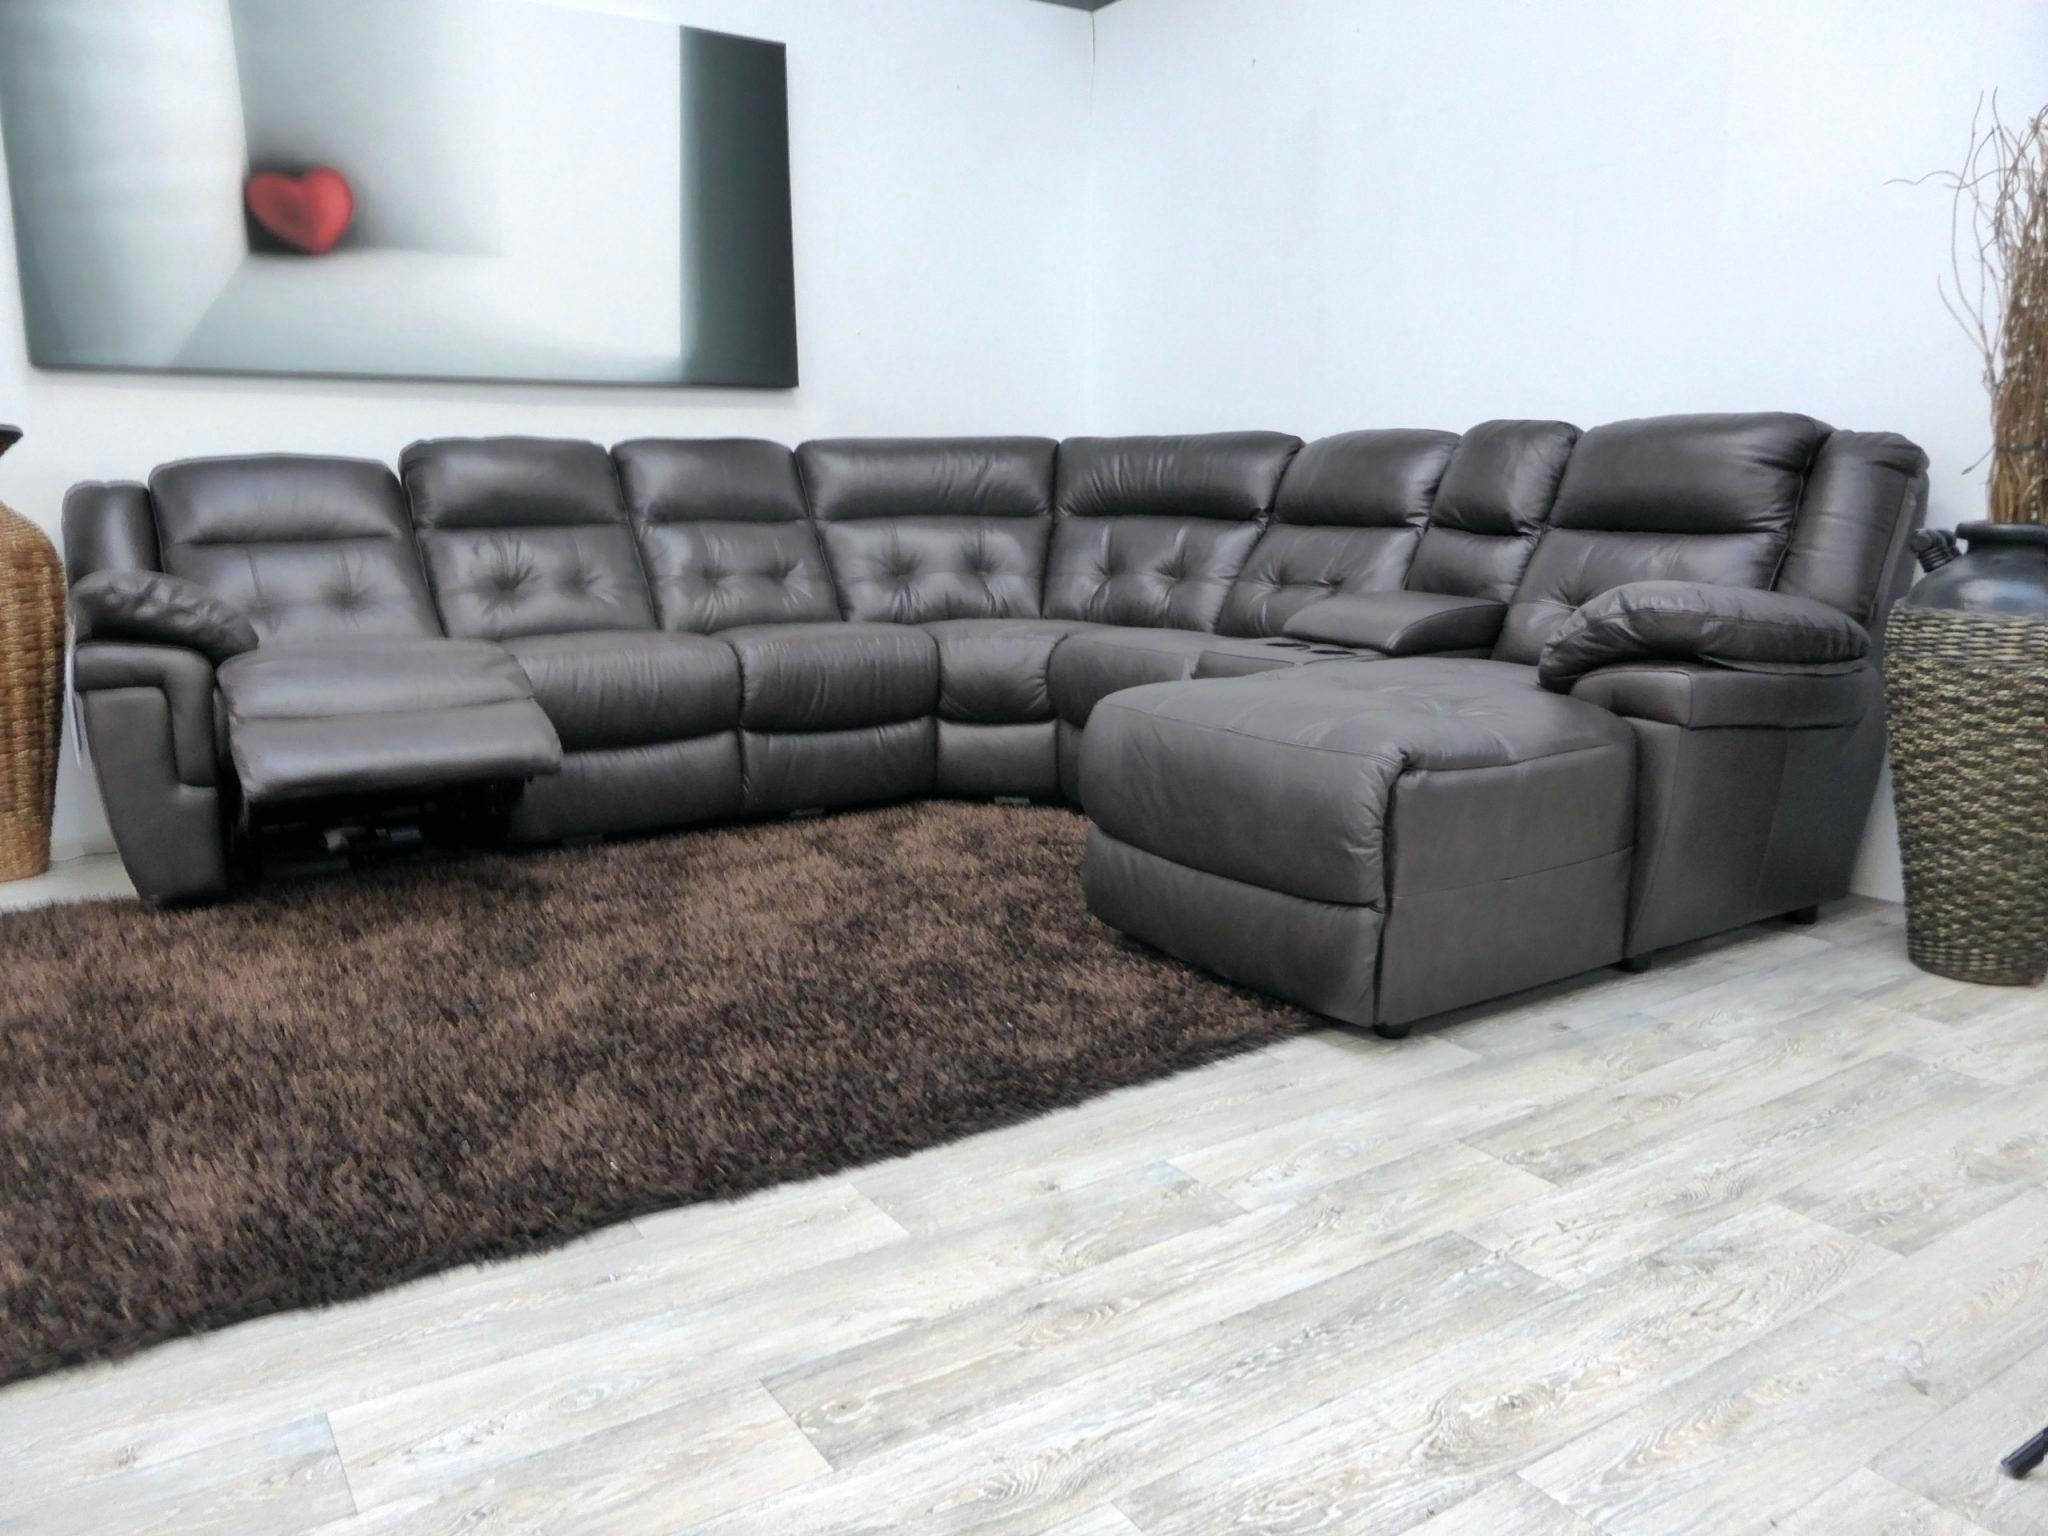 Awesome Lazy Boy Sleeper Sofa Prices 2018 – Couches And Sofas Ideas Within Most Popular Lazy Boy Chaises (View 2 of 15)